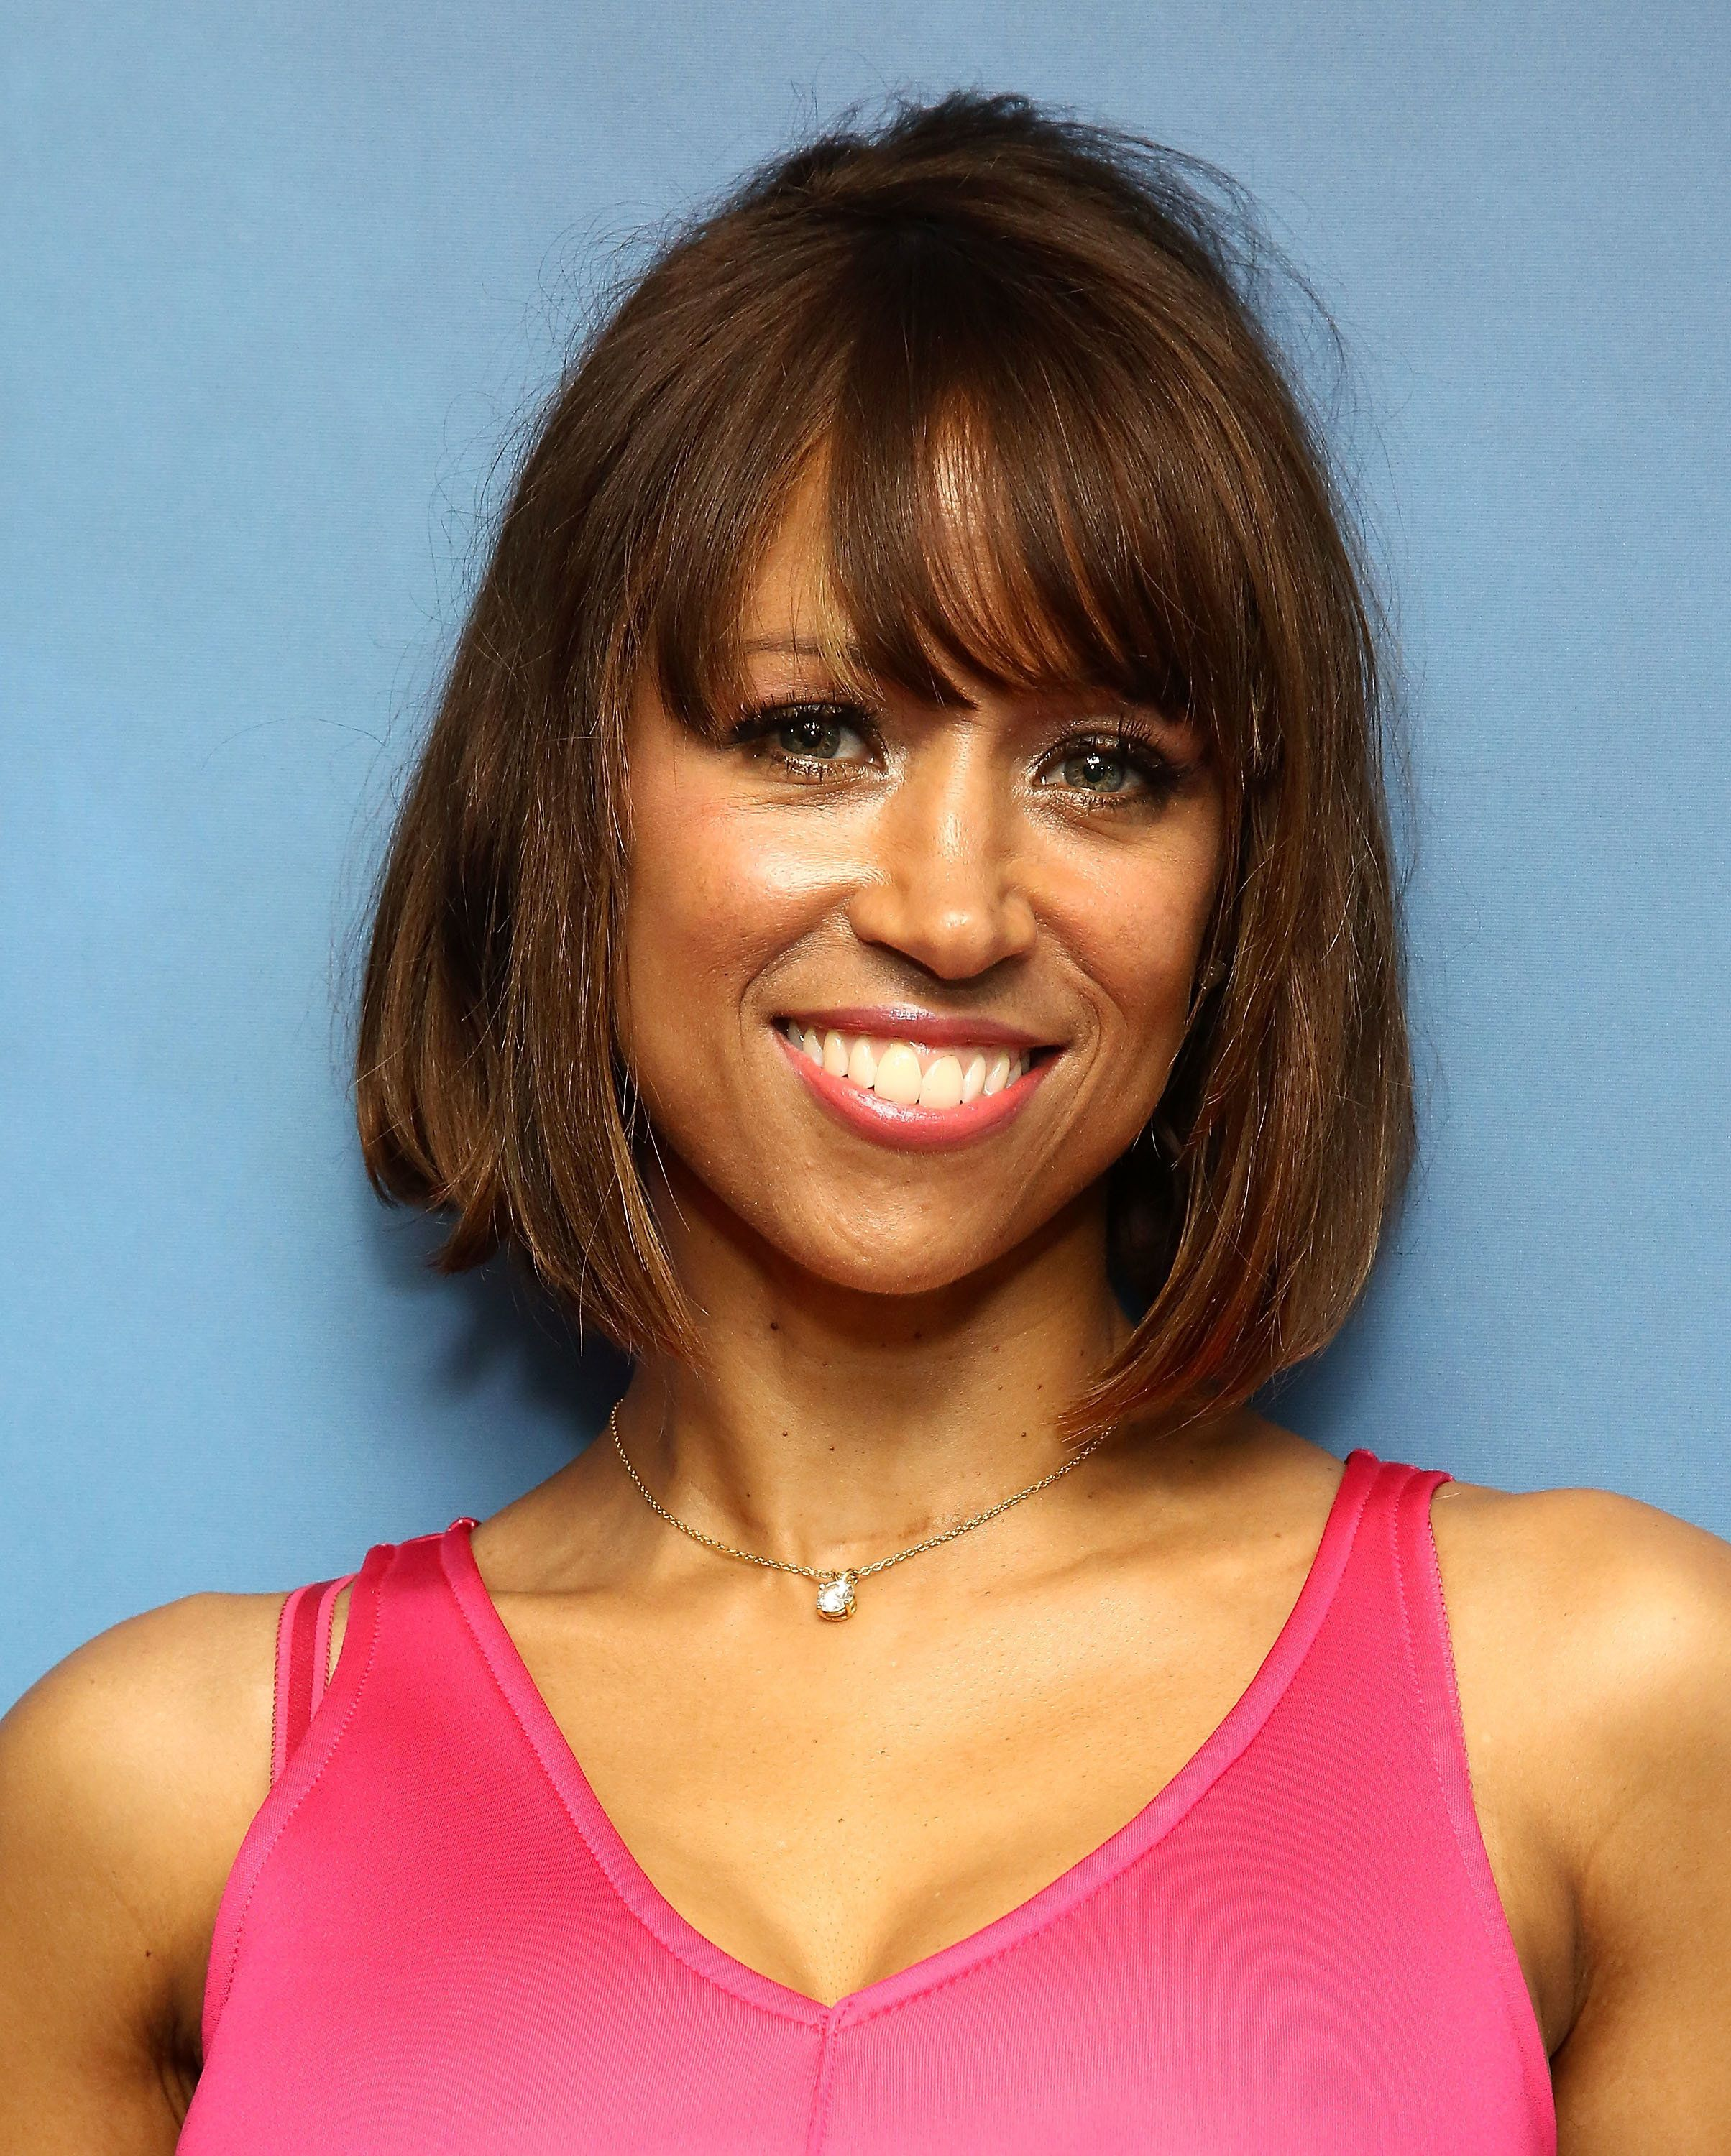 NEW YORK, NY - JUNE 06:  (EXCLUSIVE COVERAGE)  Actress and TV personality Stacey Dash visits the SiriusXM Studios on June 6, 2016 in New York City.  (Photo by Astrid Stawiarz/Getty Images)